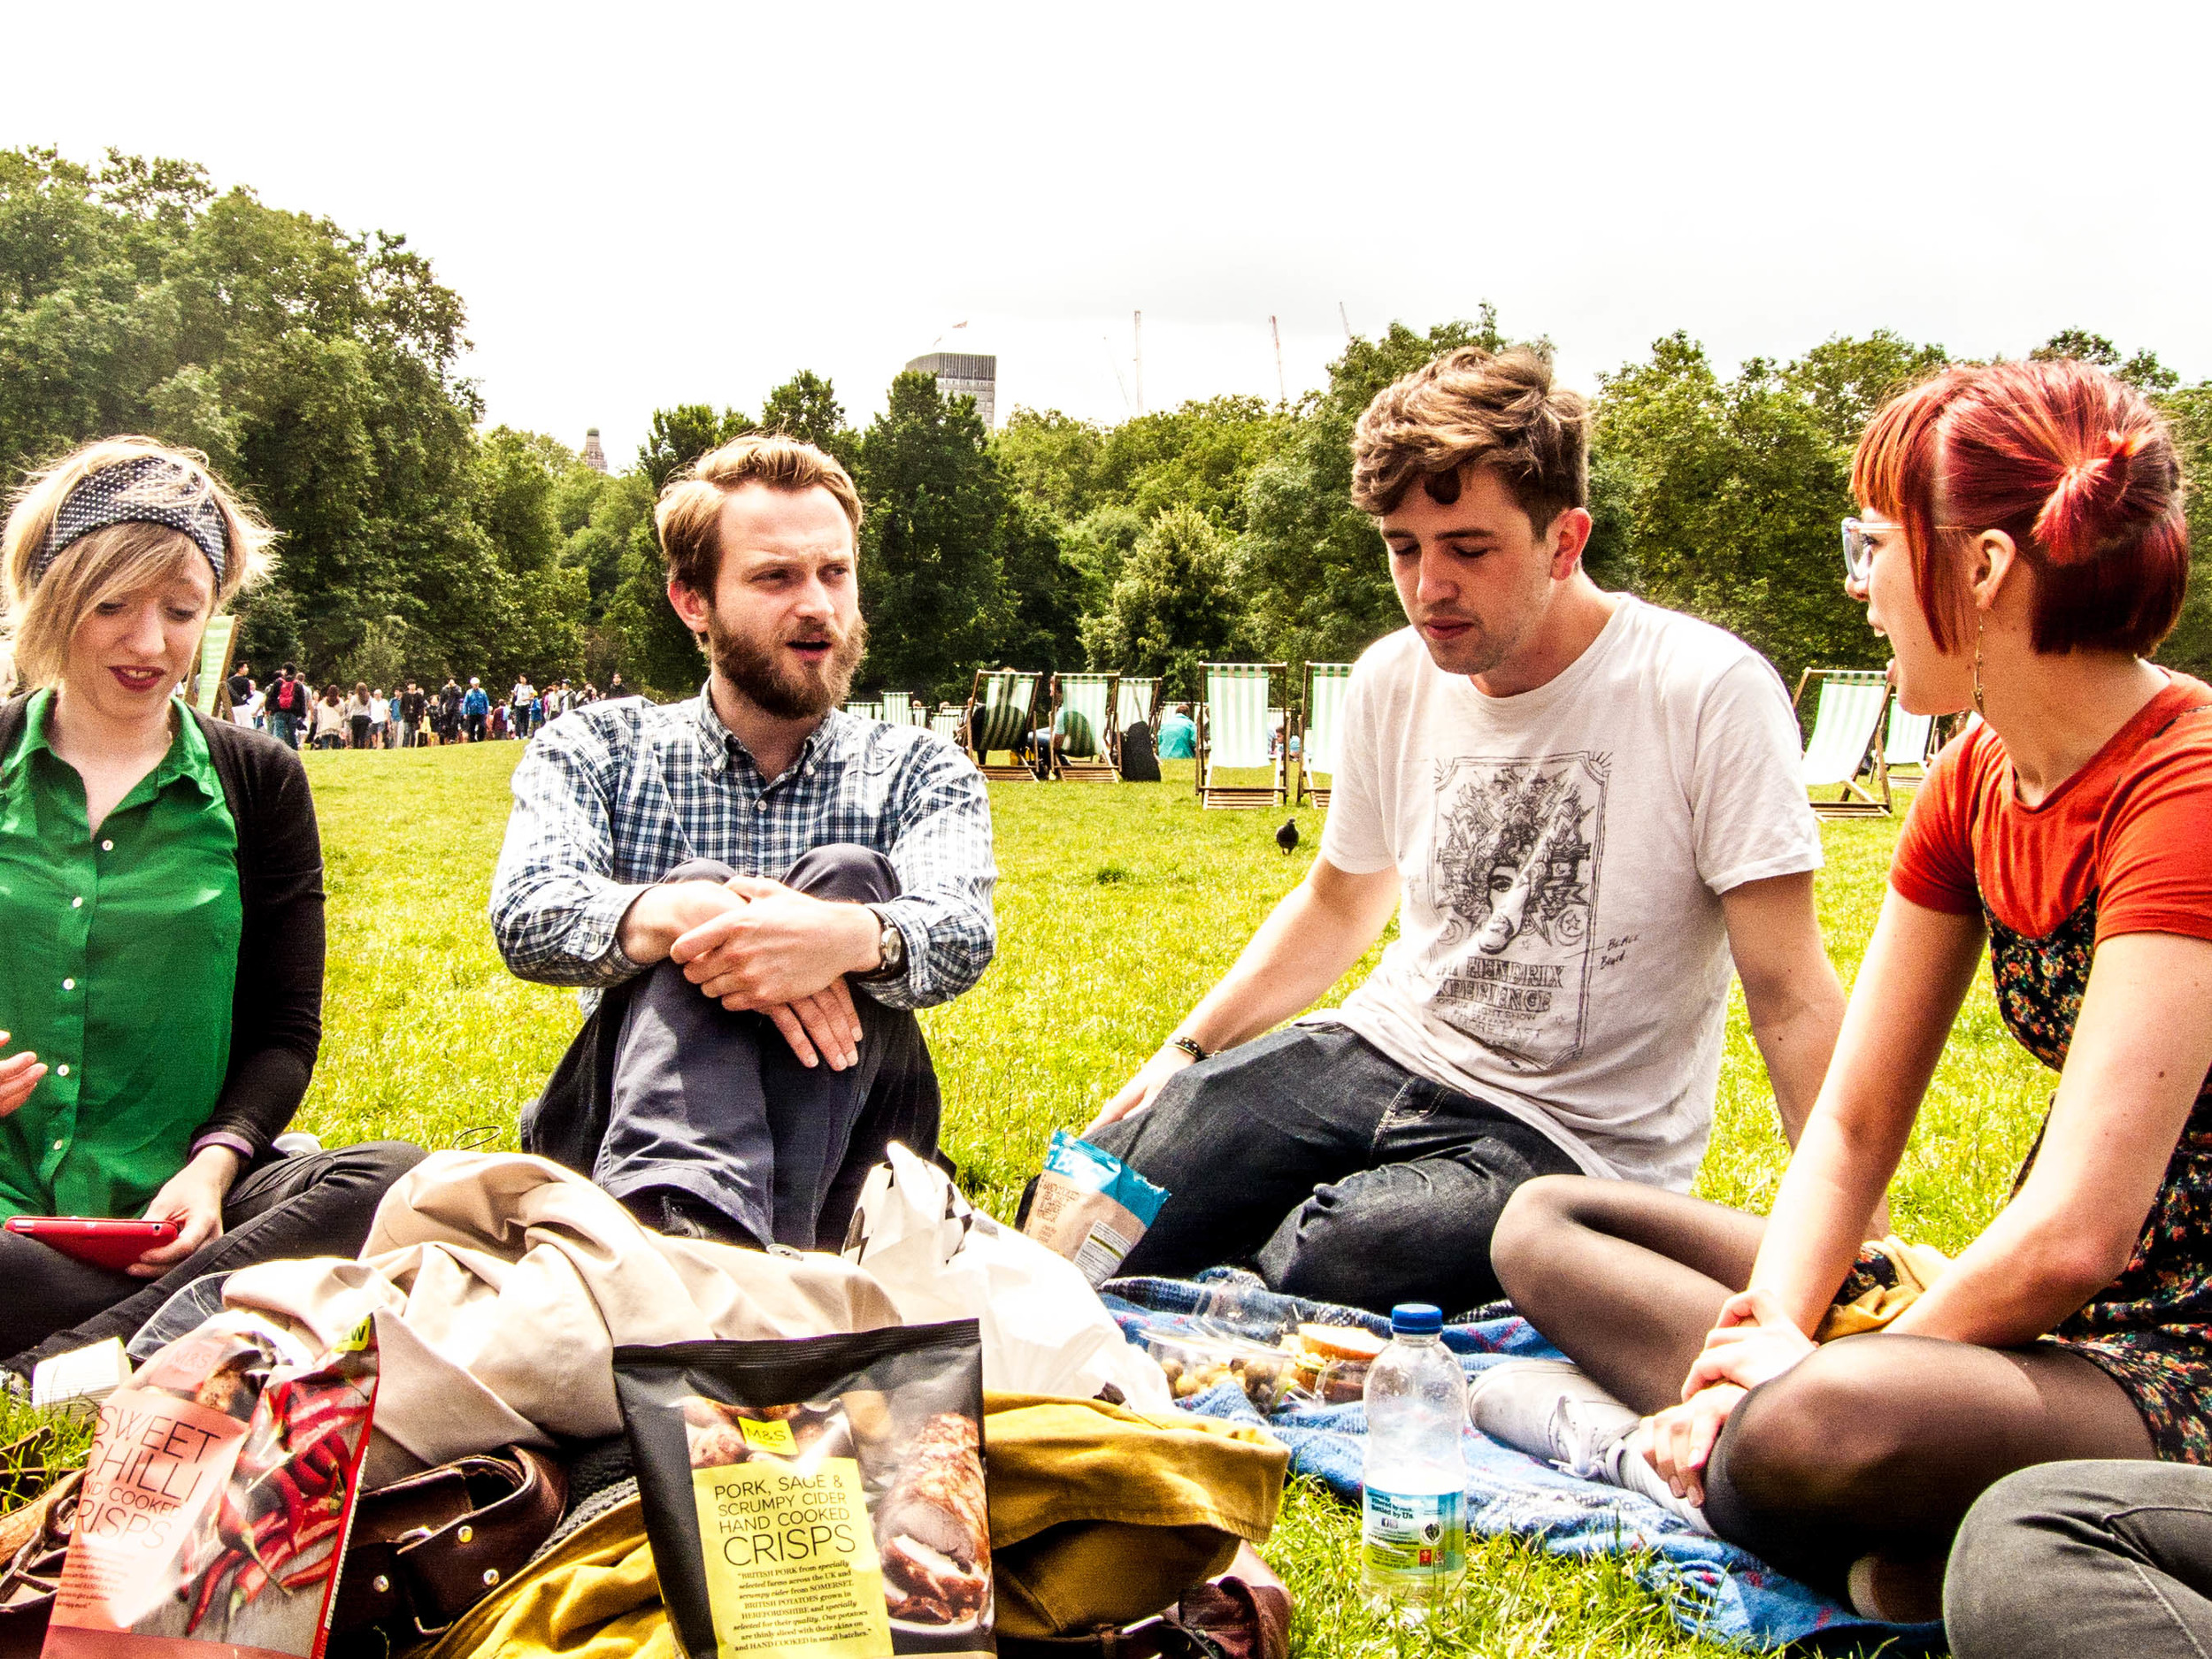 Gemma Arrowsmith (who played Georgie at the fundraiser while Ciara's at Glasto), Tom Crowley, Andy Goddard and Anna Lore